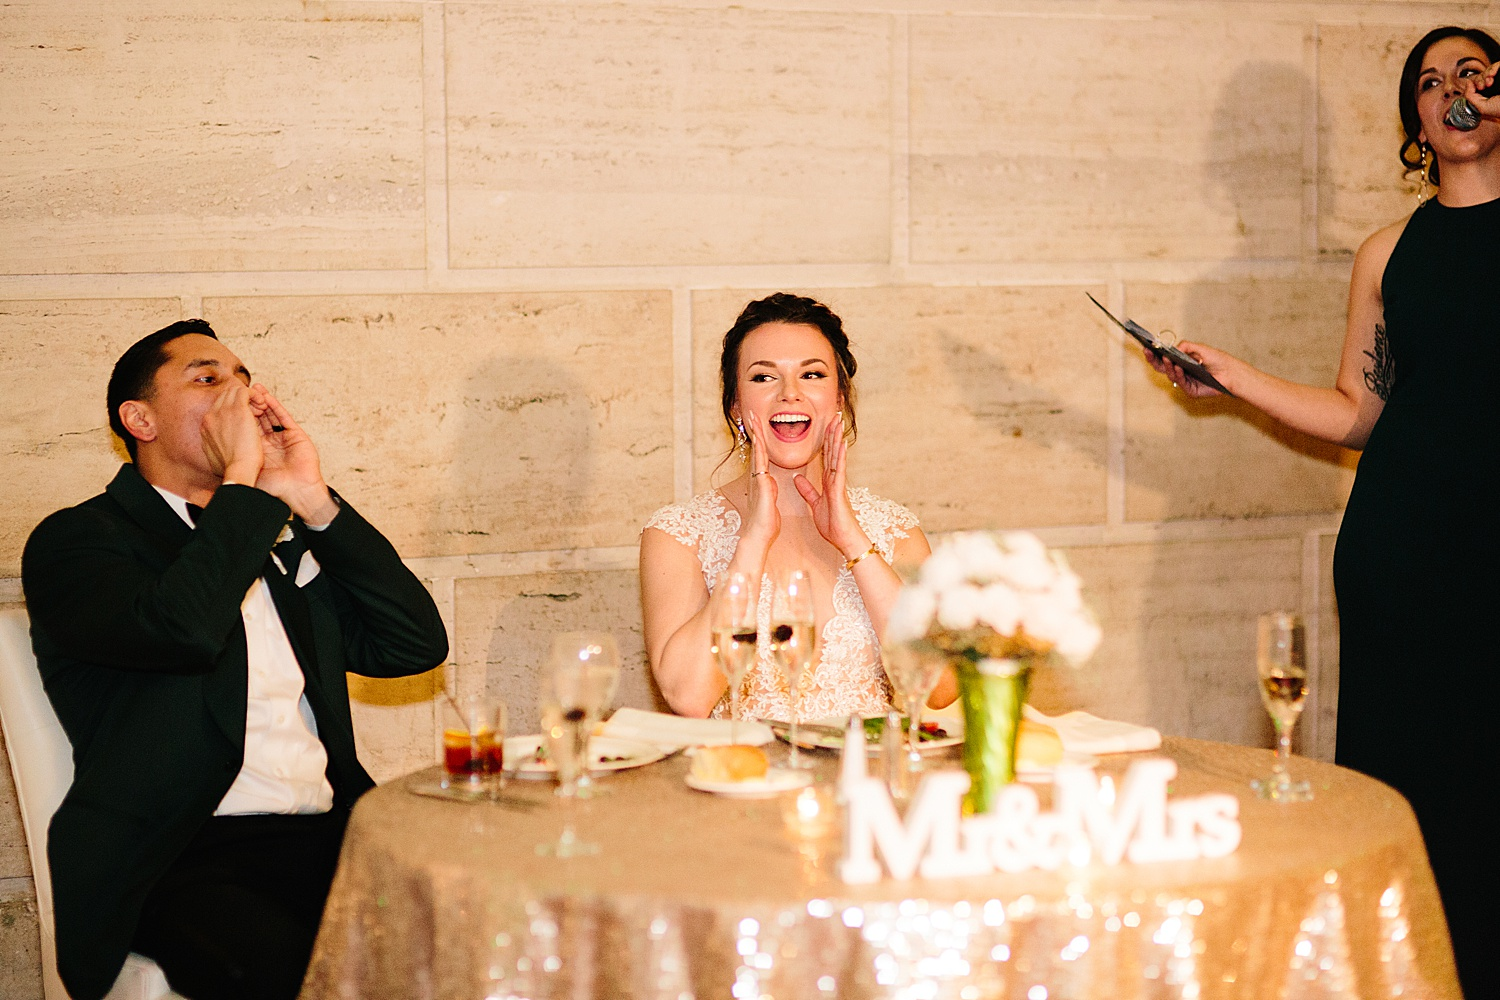 kirstentony_uniontrust_finleycatering_christchurch_philadelphia_wedding_image_0744.jpg